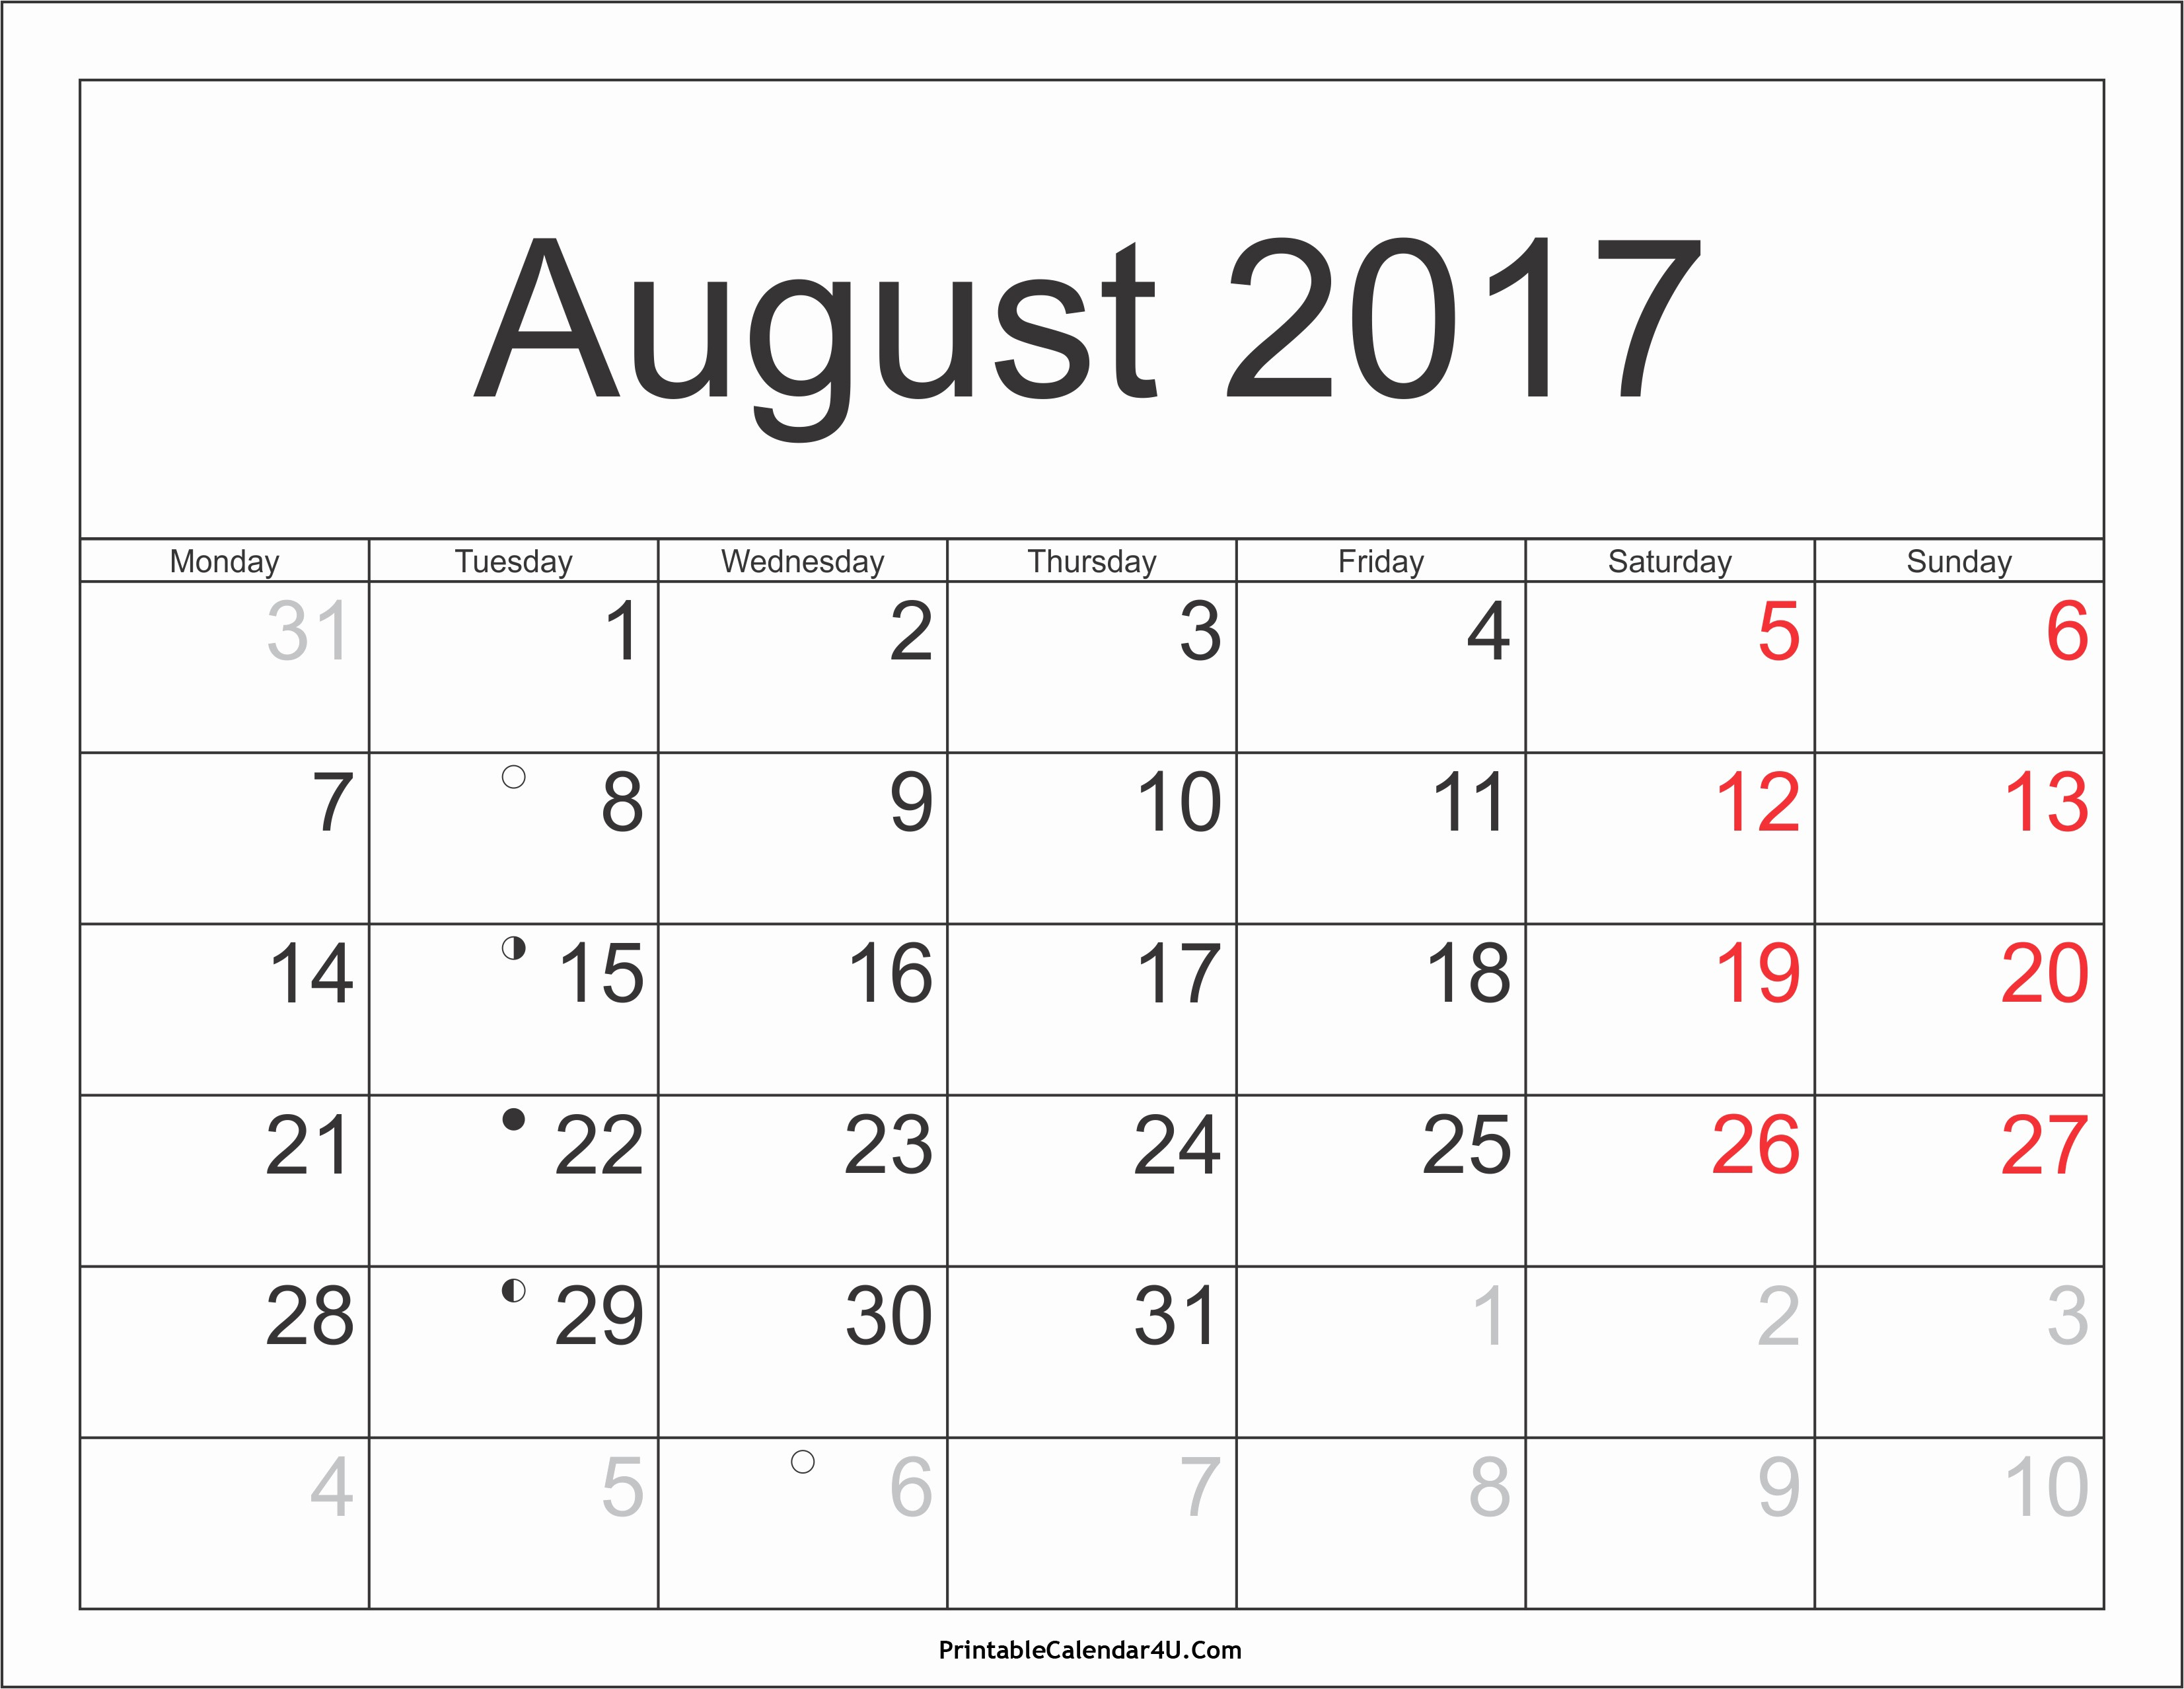 Blank Calendar Template August 2017 Awesome August 2017 Calendar Printable with Holidays 2 Printable